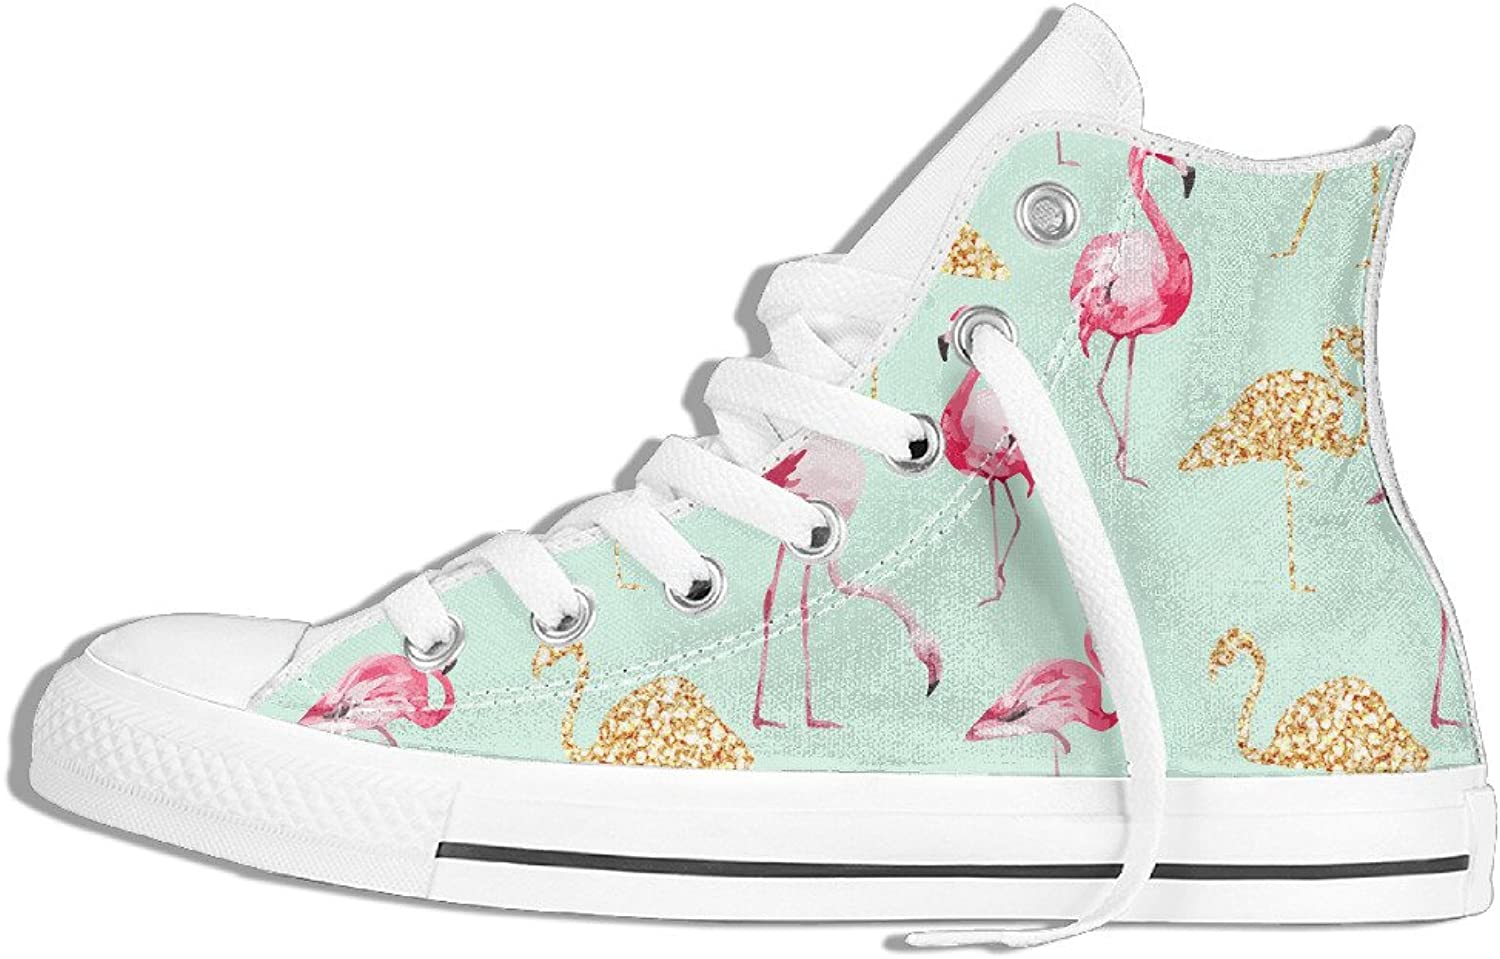 Efbj Flamingo Unisex Leisure High Top Canvas shoes Sneakers for Men and Women